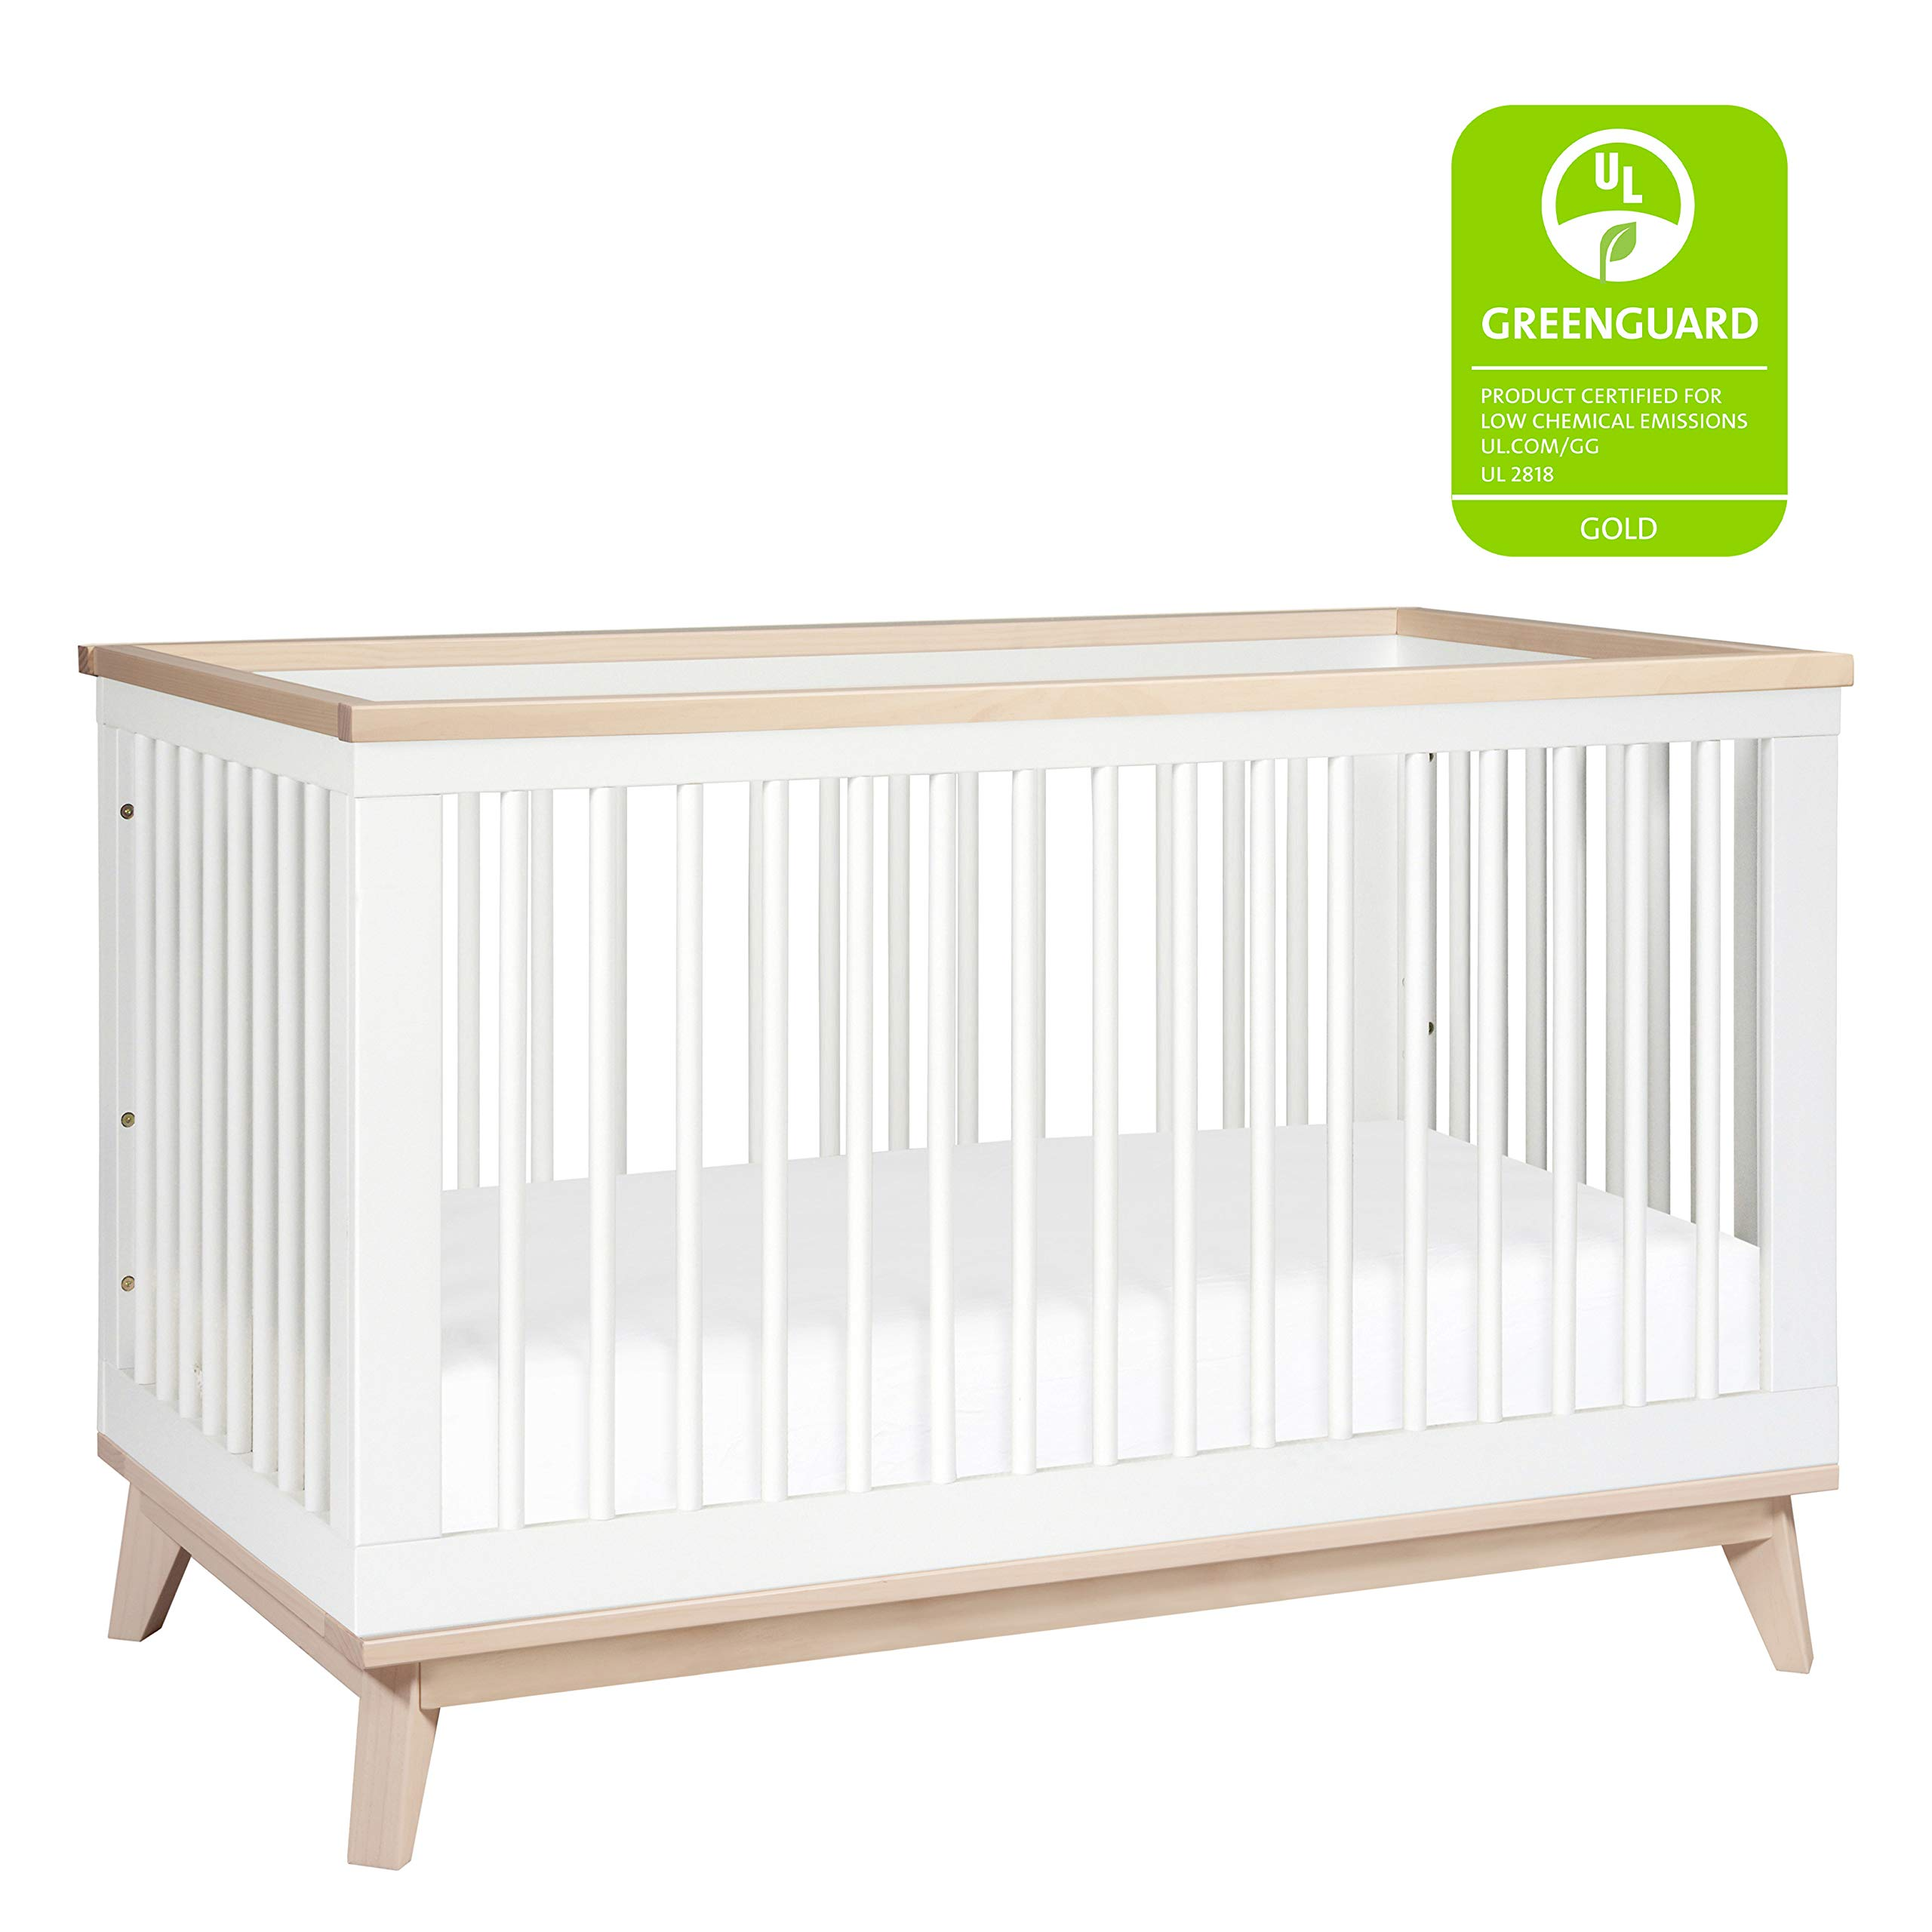 Babyletto Scoot 3-in-1 Convertible Crib with Toddler Bed Conversion Kit, White / Washed Natural by Babyletto